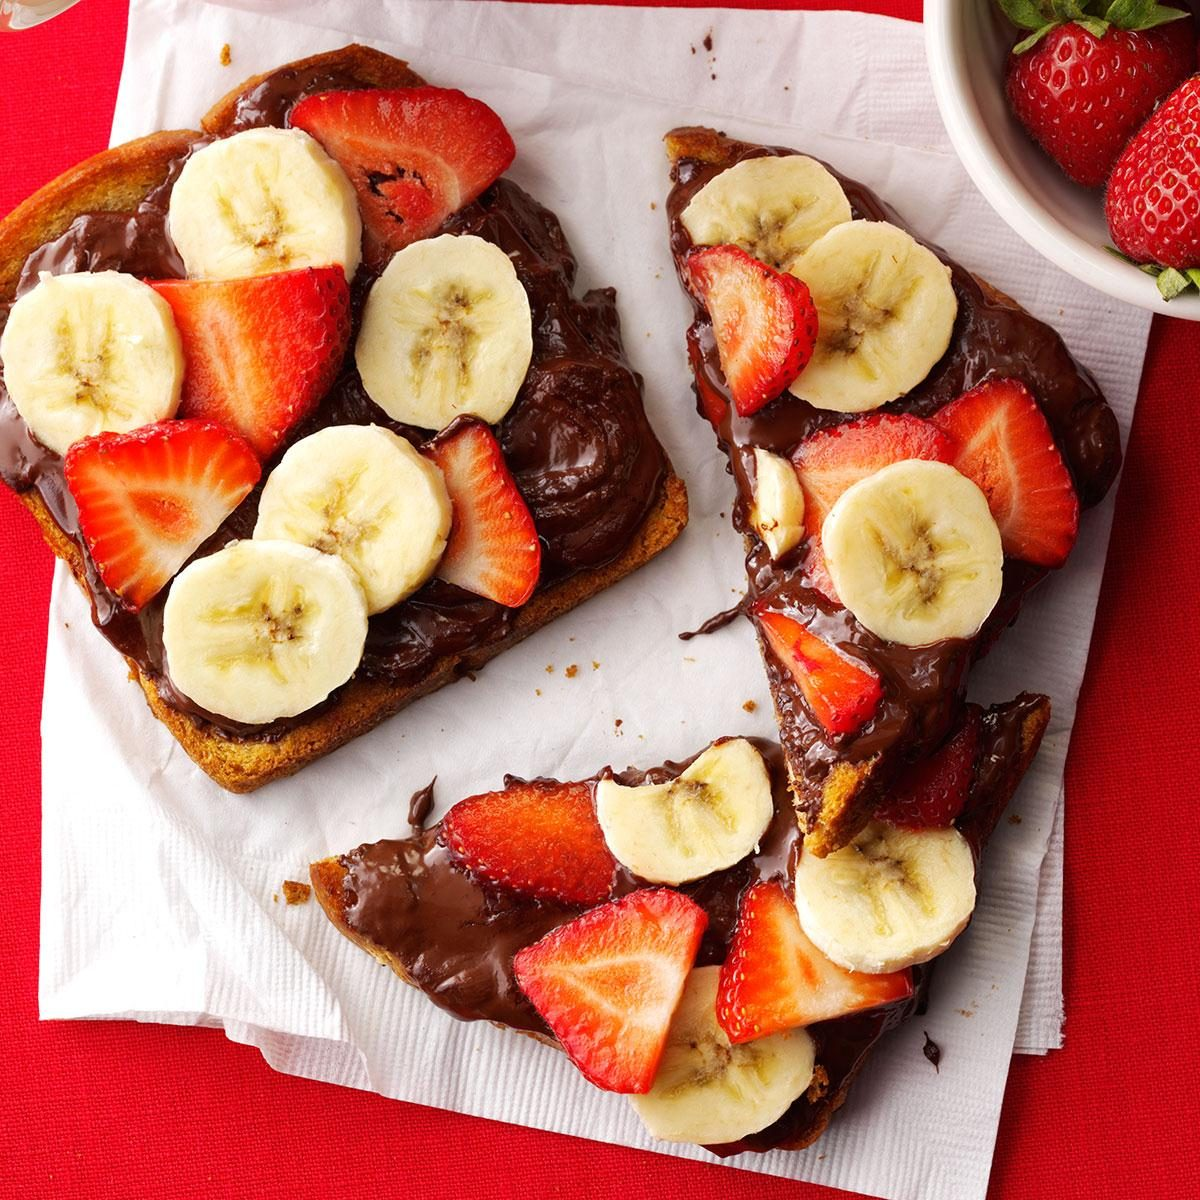 Chocolate Cinnamon Toast